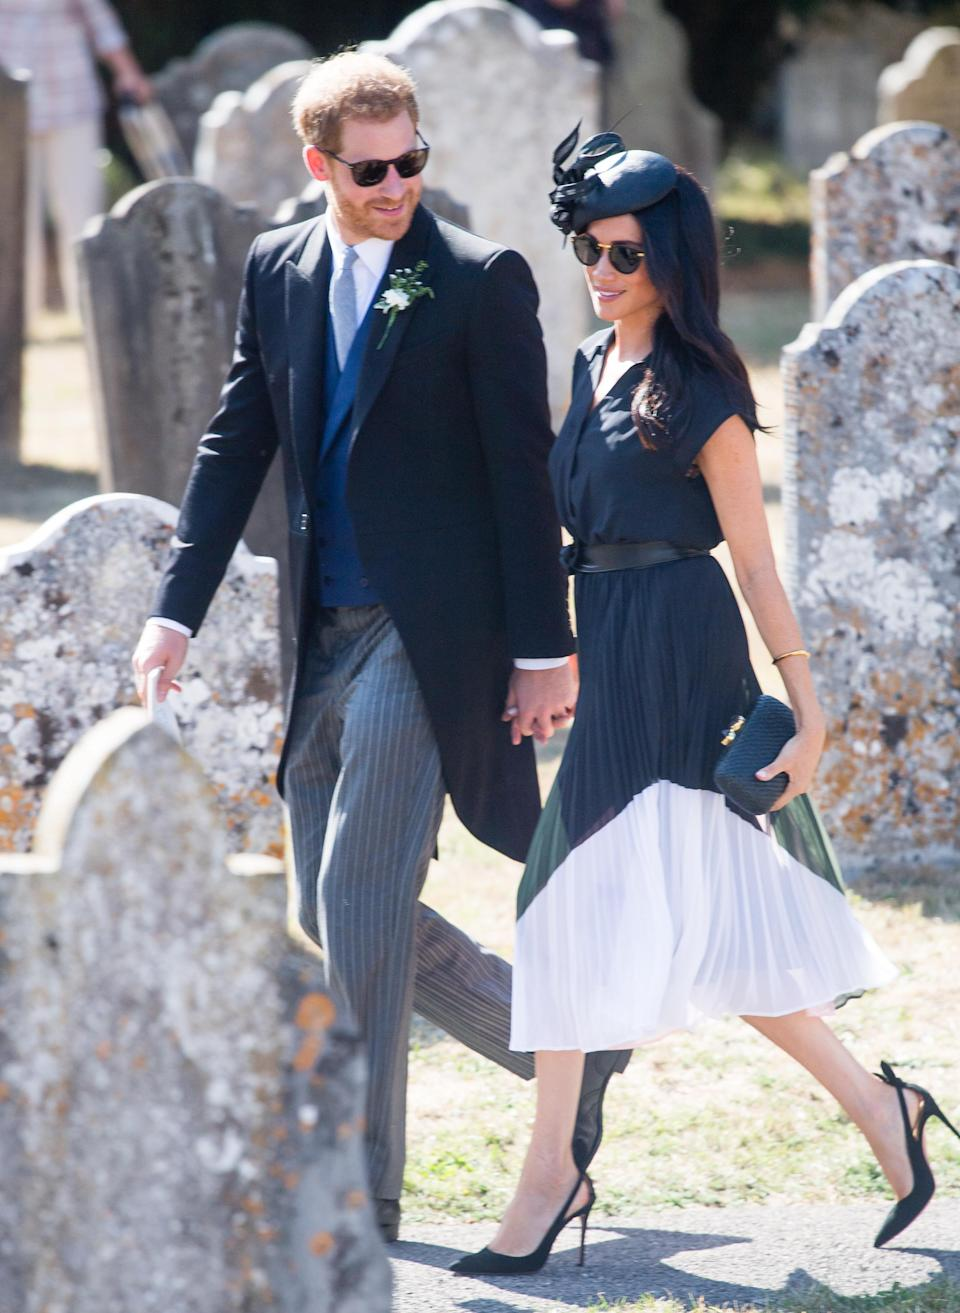 On August 4, the Duke and Duchess of Sussex attended Charlie Van Straubenzee and Daisy Jenk's wedding [Photo: Getty]